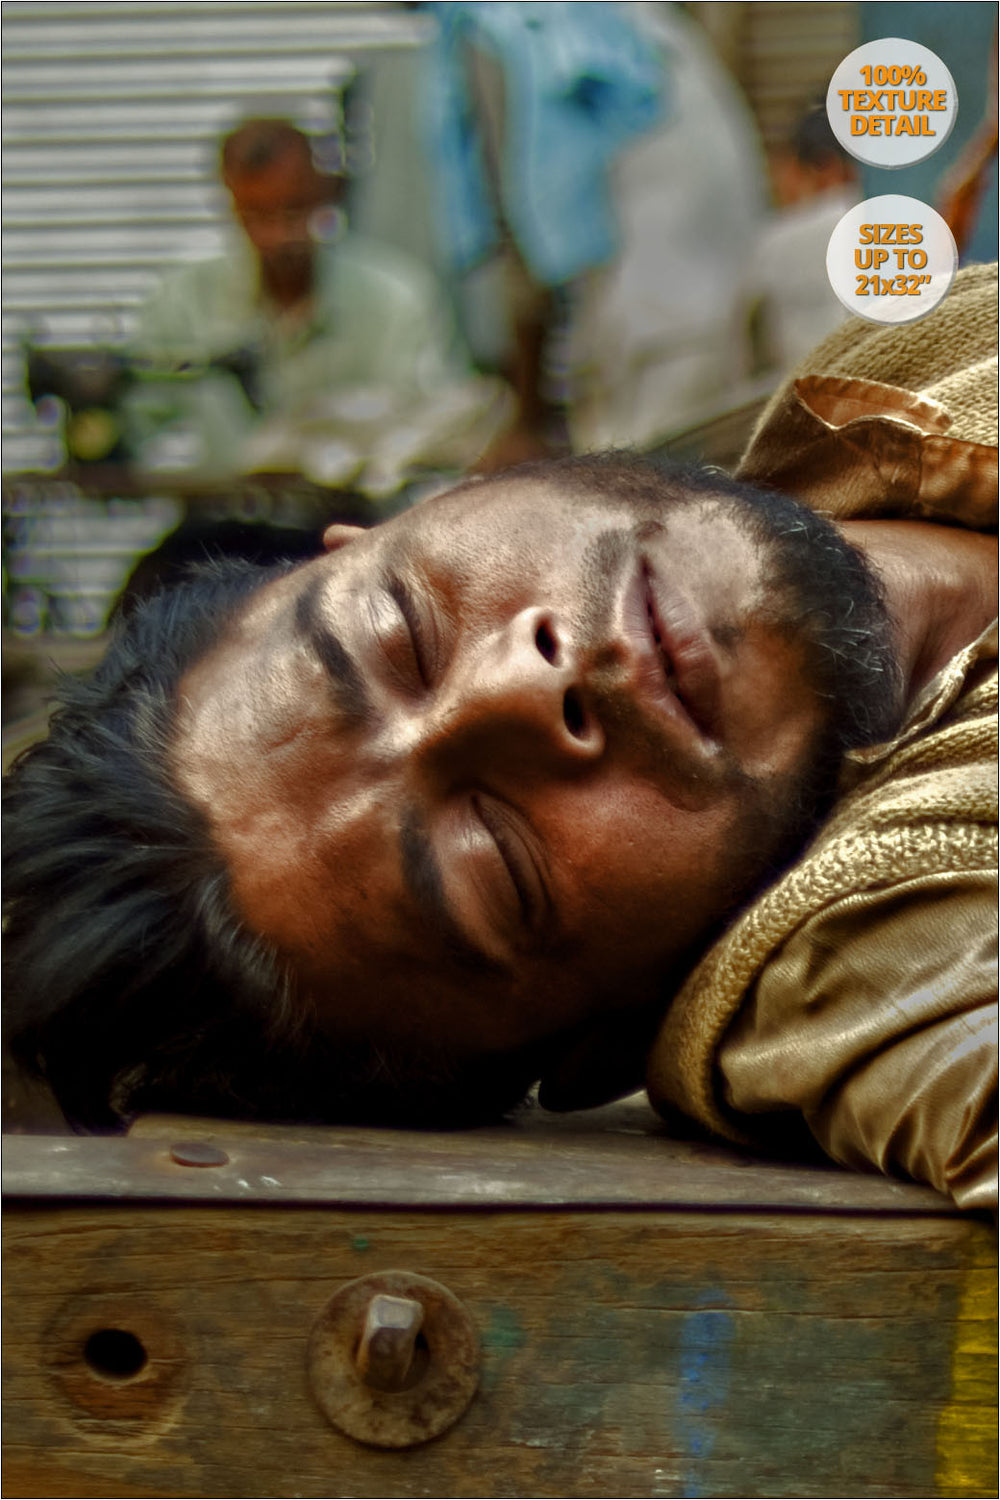 100% Detail. | Carrier taking a nap, Delhi. | Fine Art Photography.